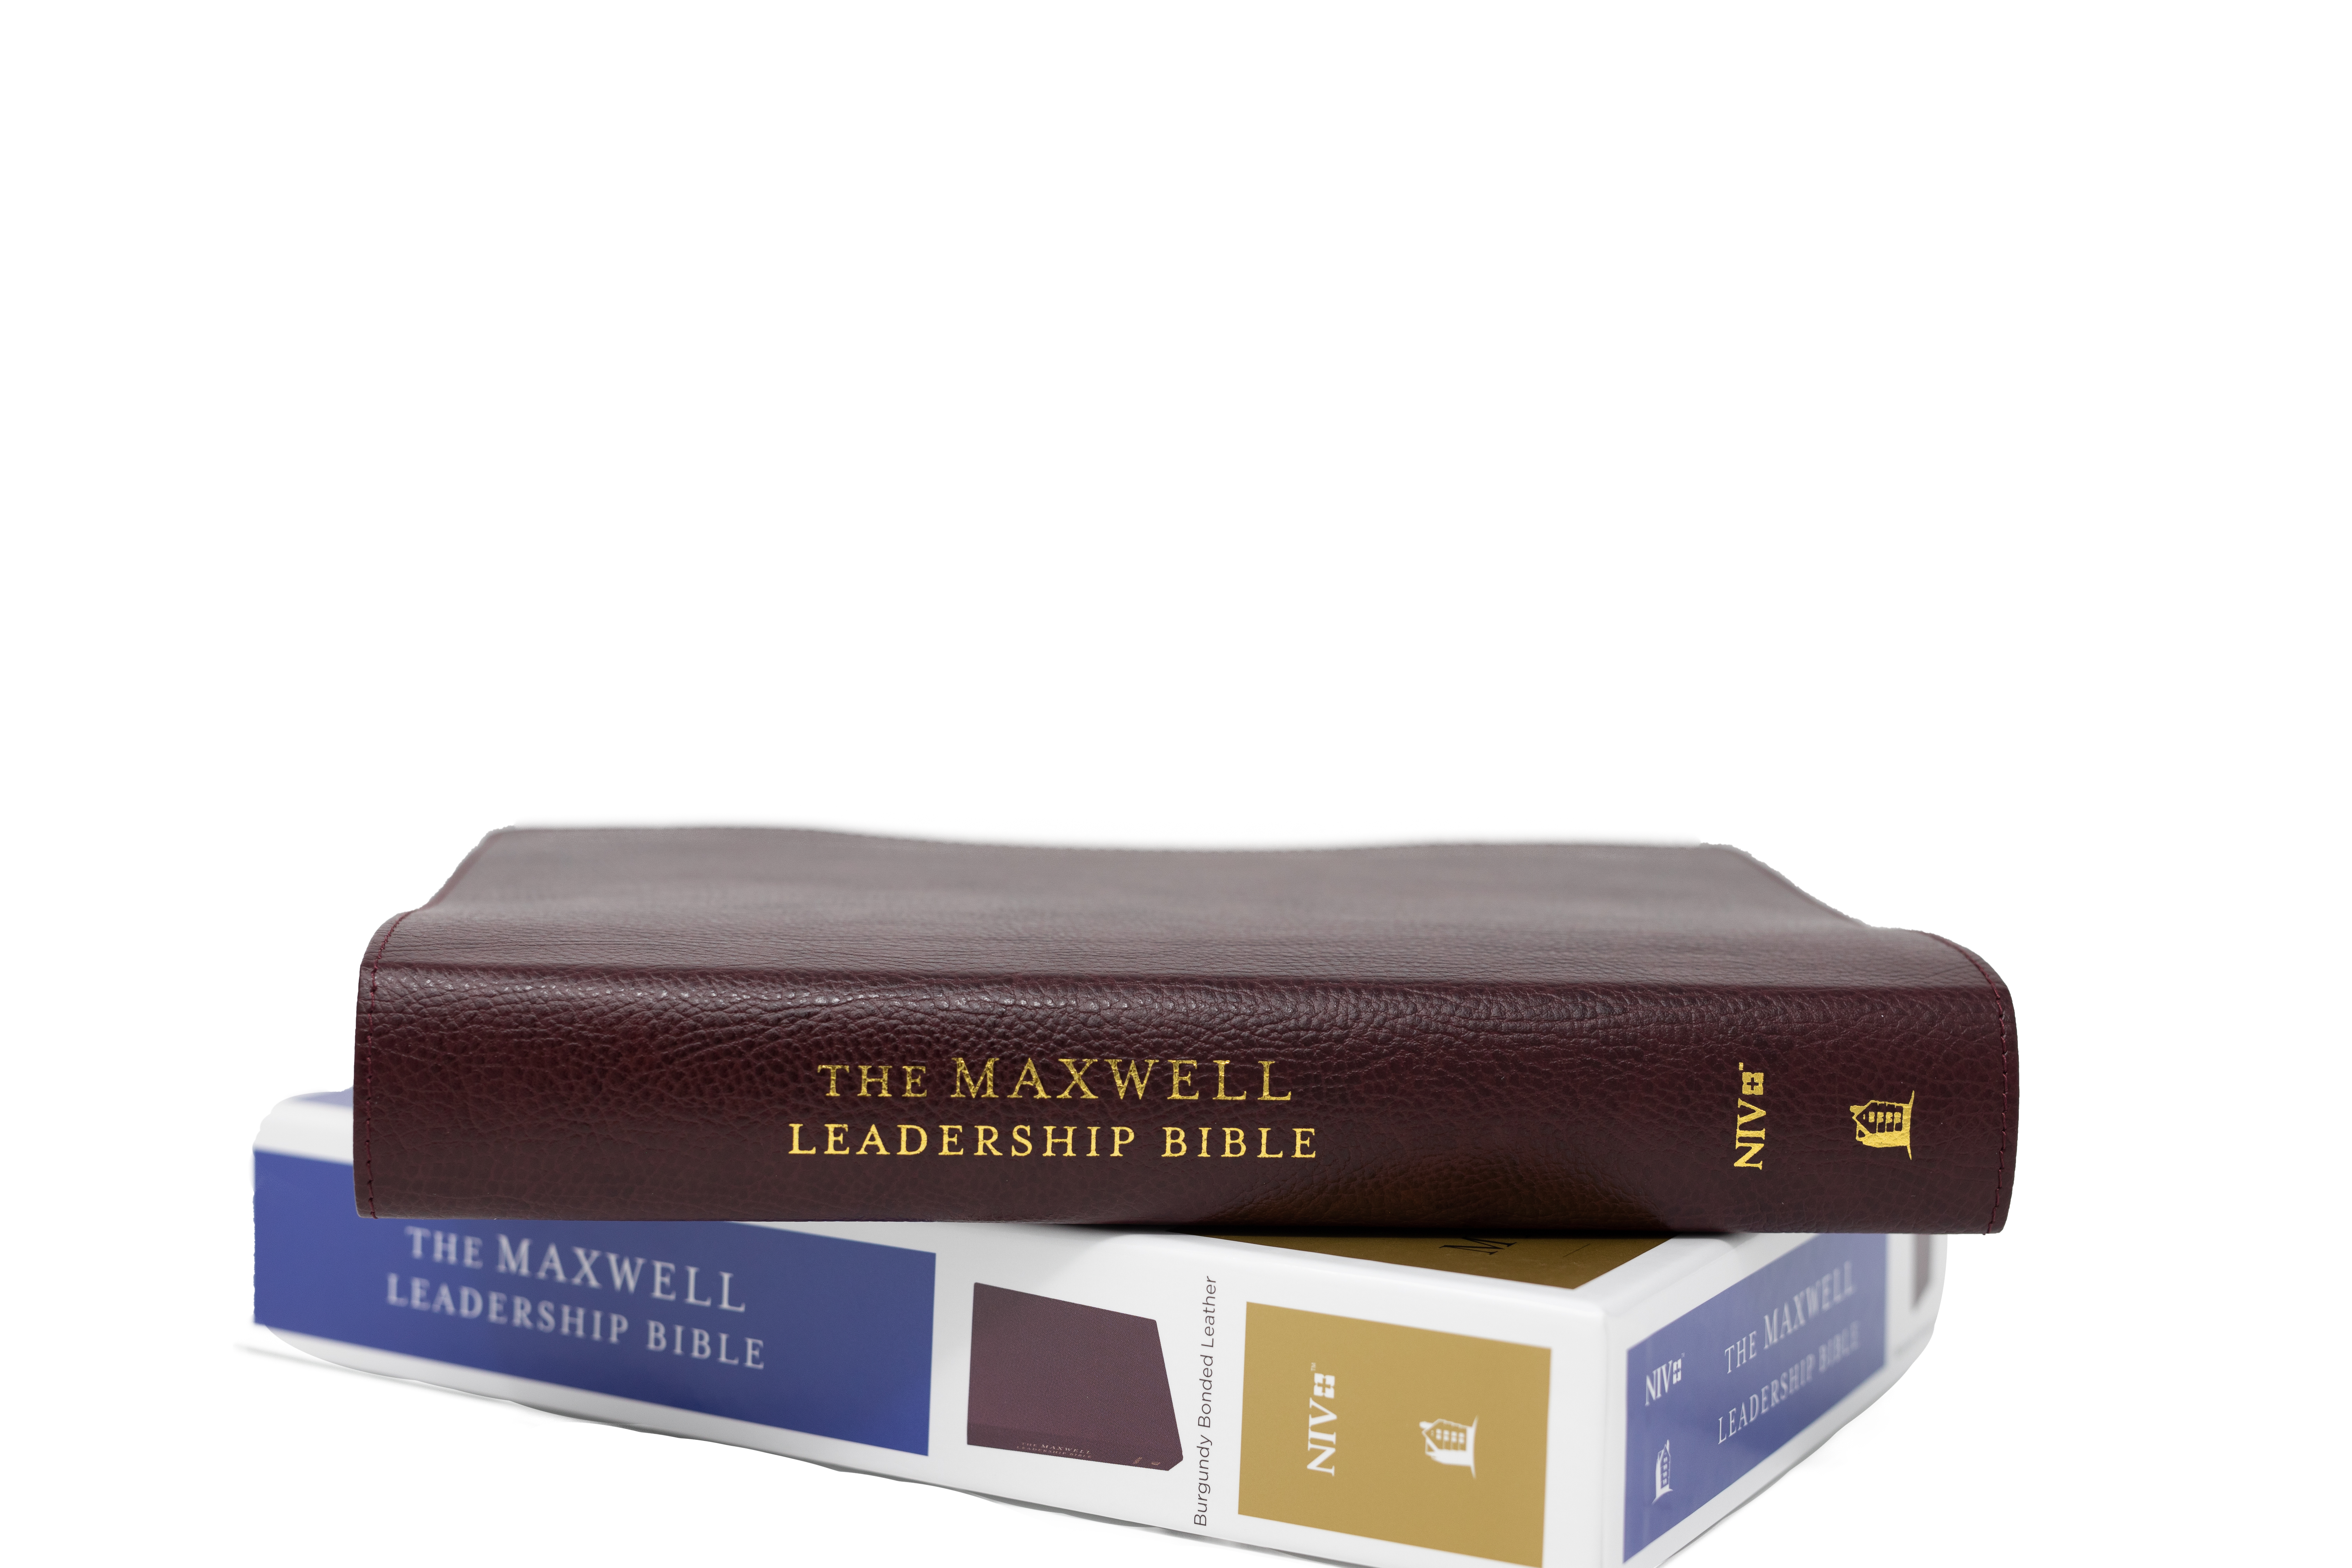 The Maxwell Leadership Bible NIV [Burgundy Premium Bonded Leather] - Third Edition Comfort Print